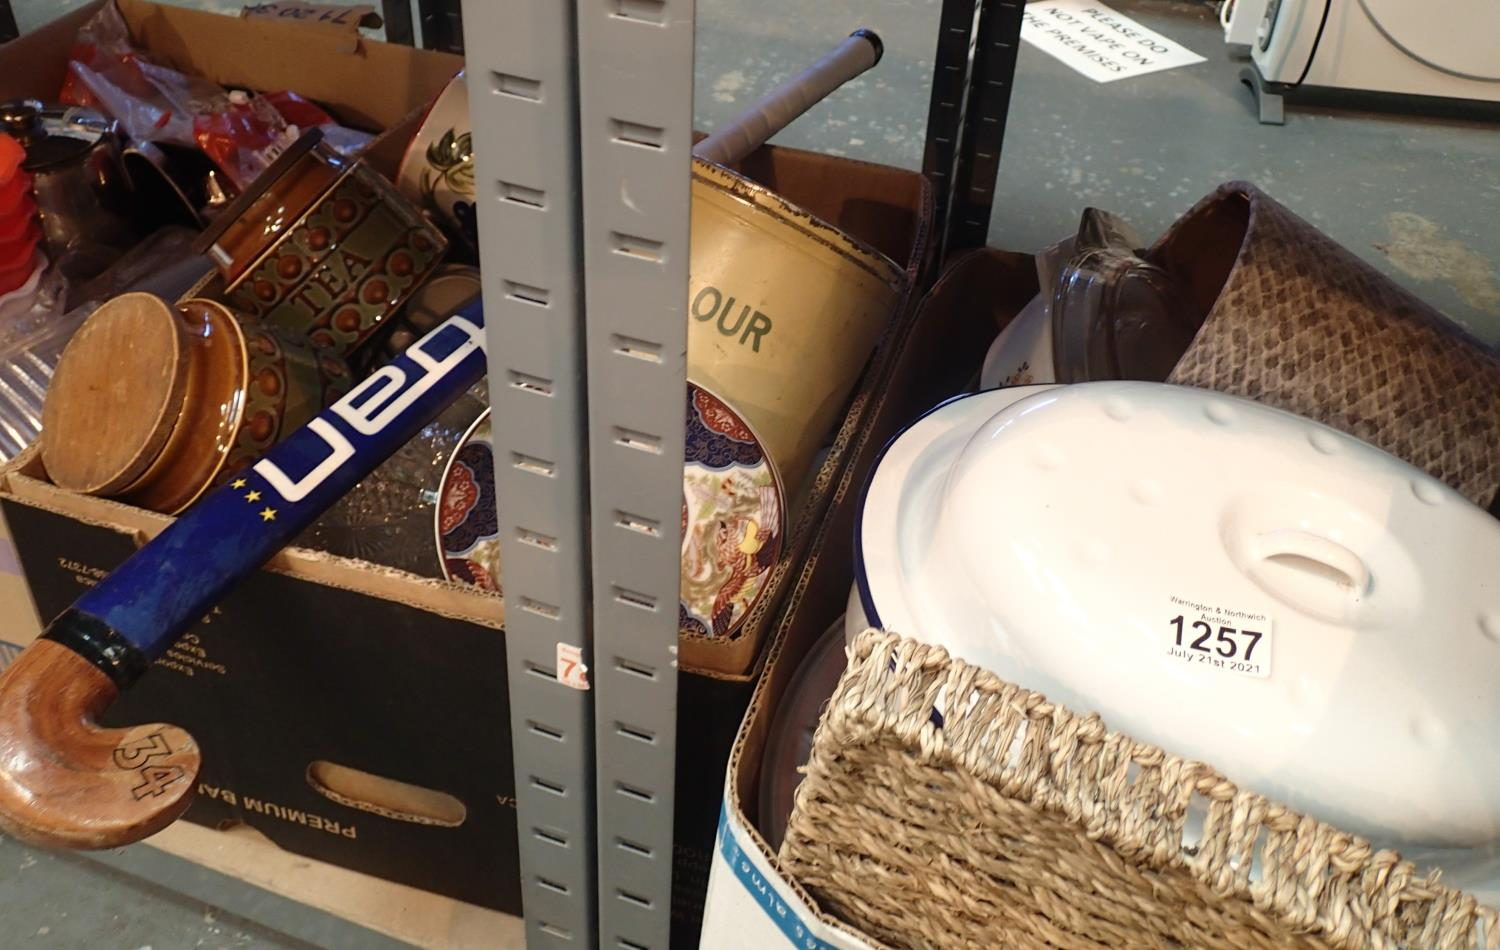 Two boxes of mixed glass, ceramics to include an enamelled casserole dish. Not available for in-